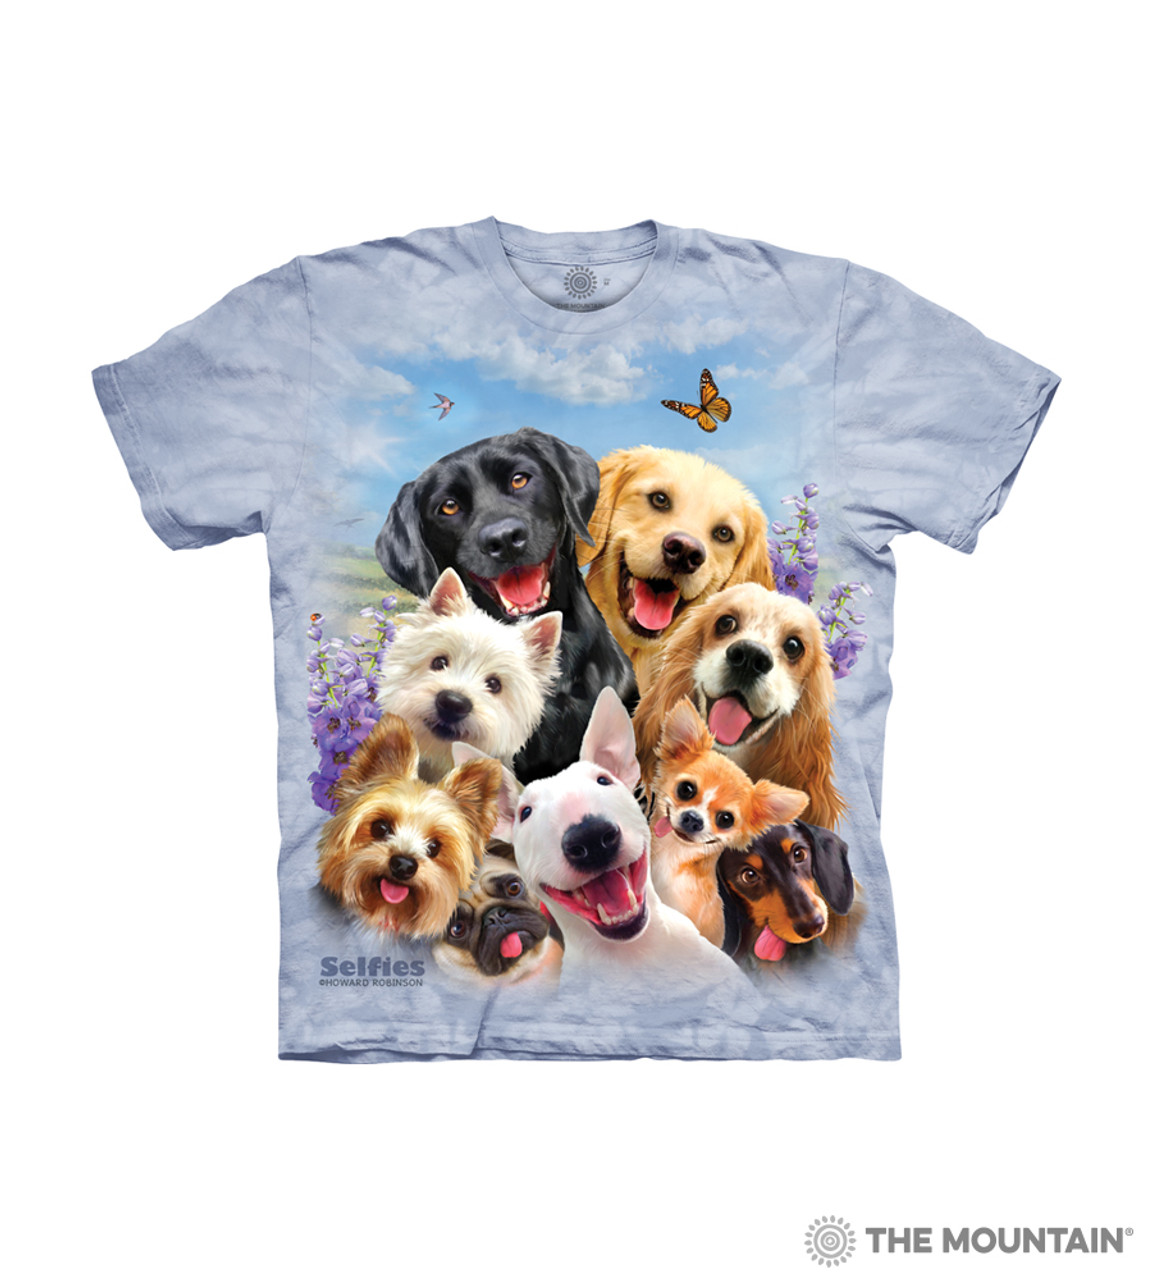 Details about  /The Mountain 100/% Cotton Kid/'s T-Shirt Youth Tee Dogs Speak S Made in USA  NWT